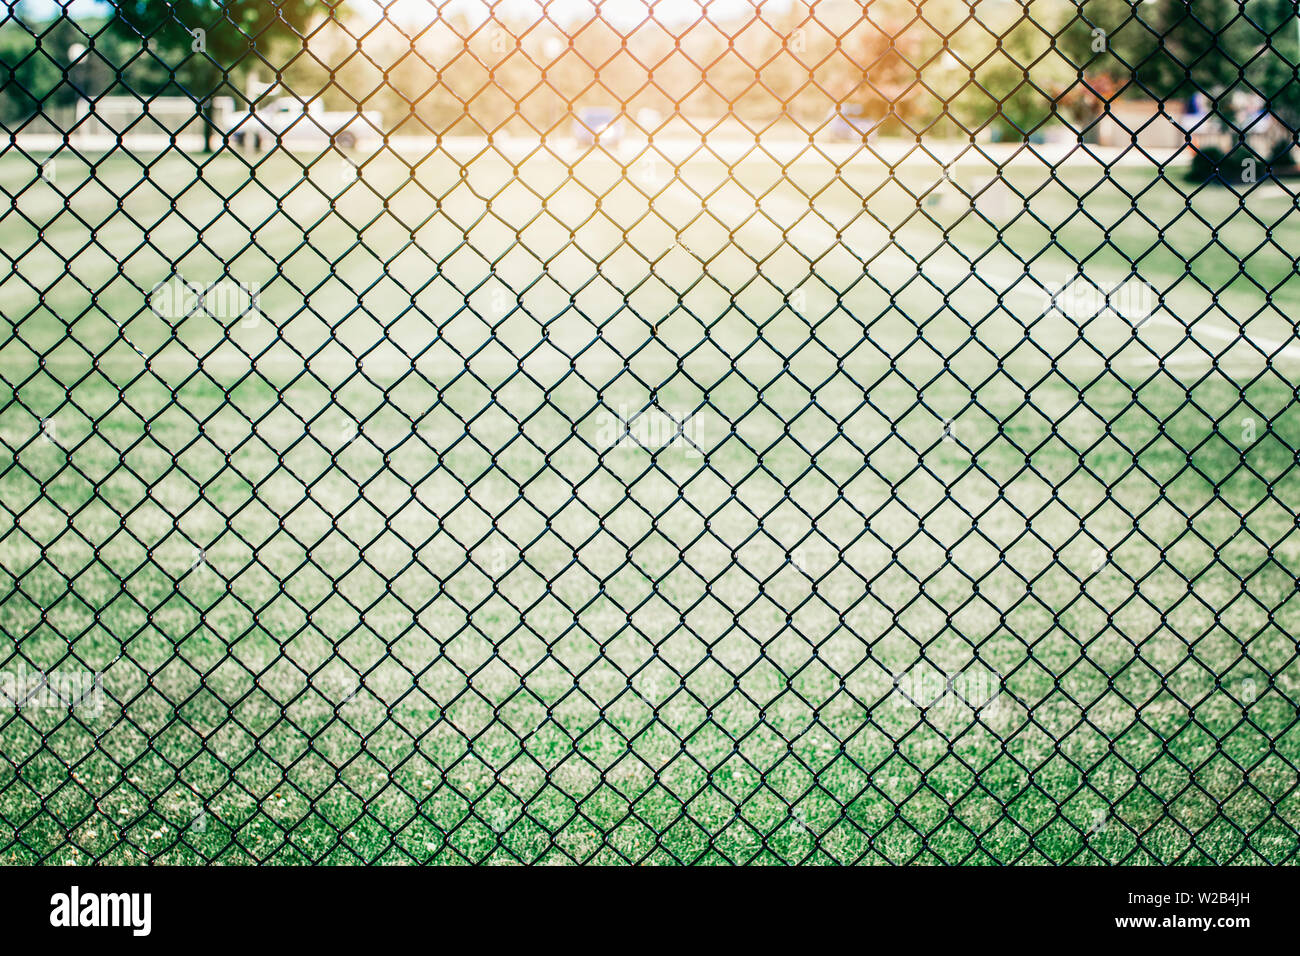 Wire Mesh Fence Stock Photos & Wire Mesh Fence Stock Images